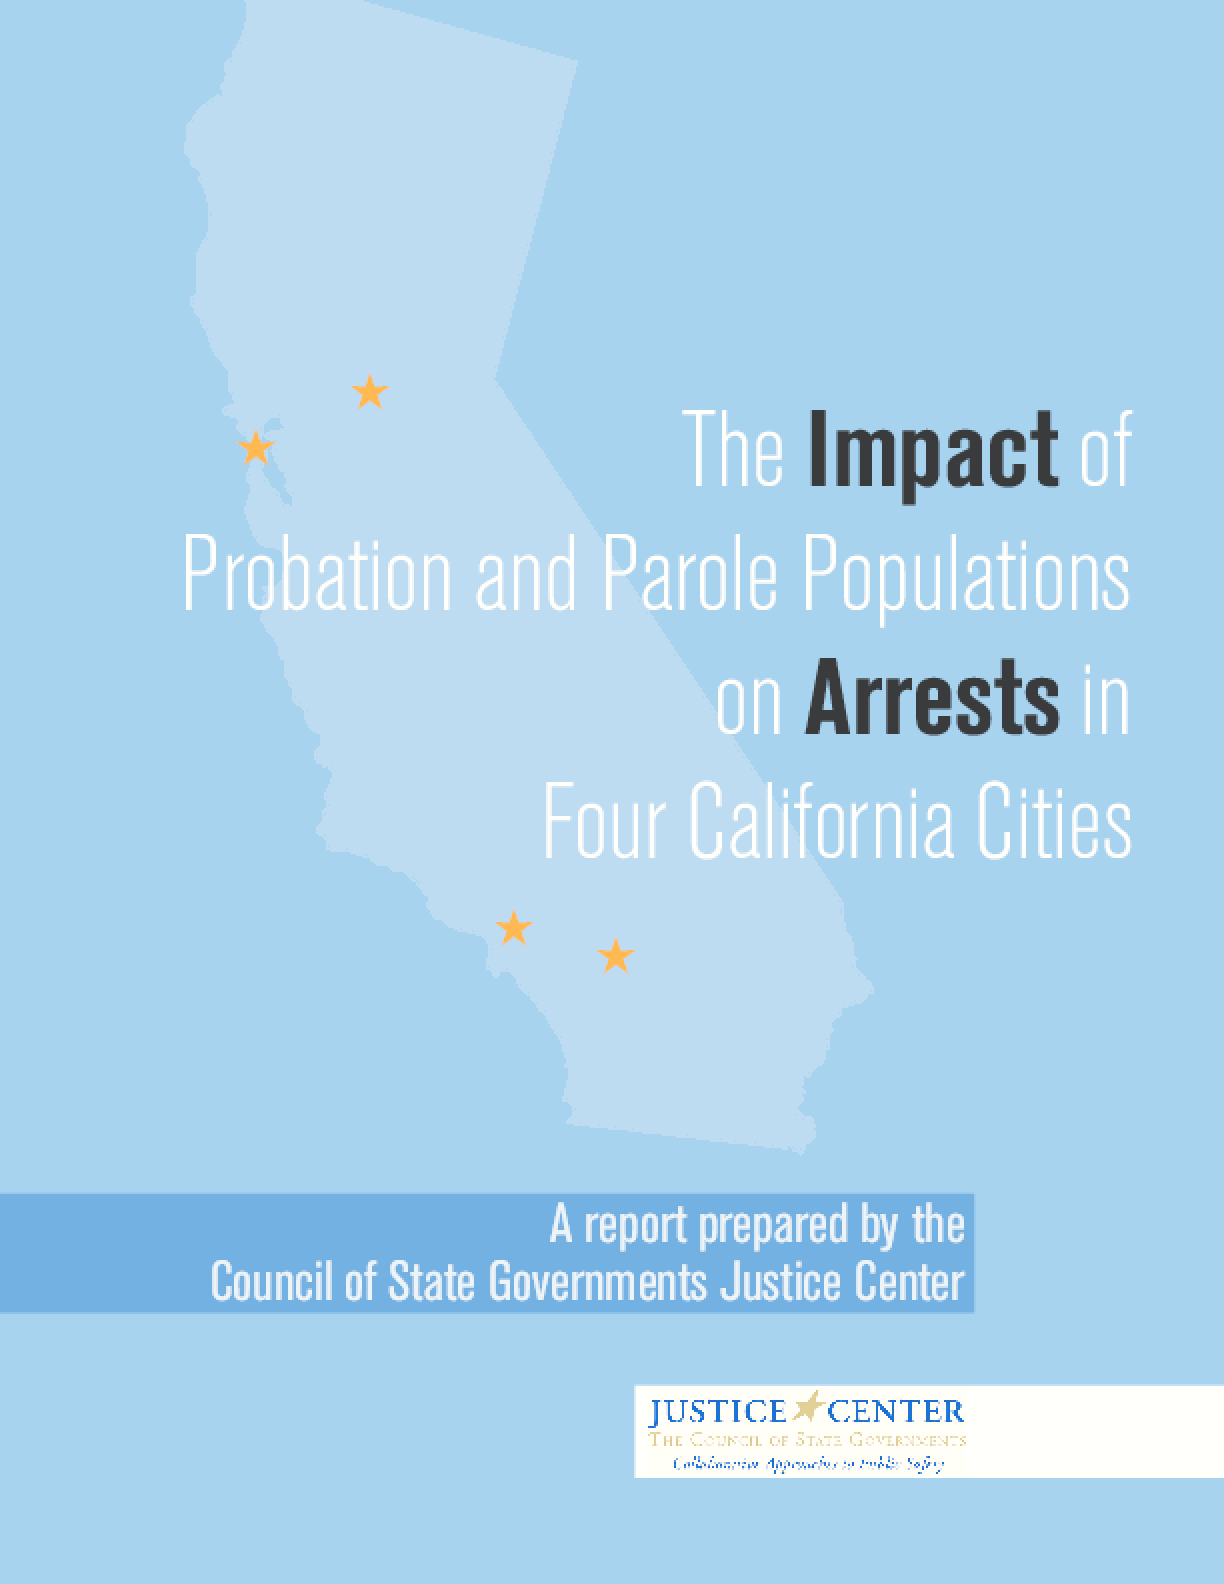 The Impact of Probation and Parole Populations on Arrests in Four California Cities